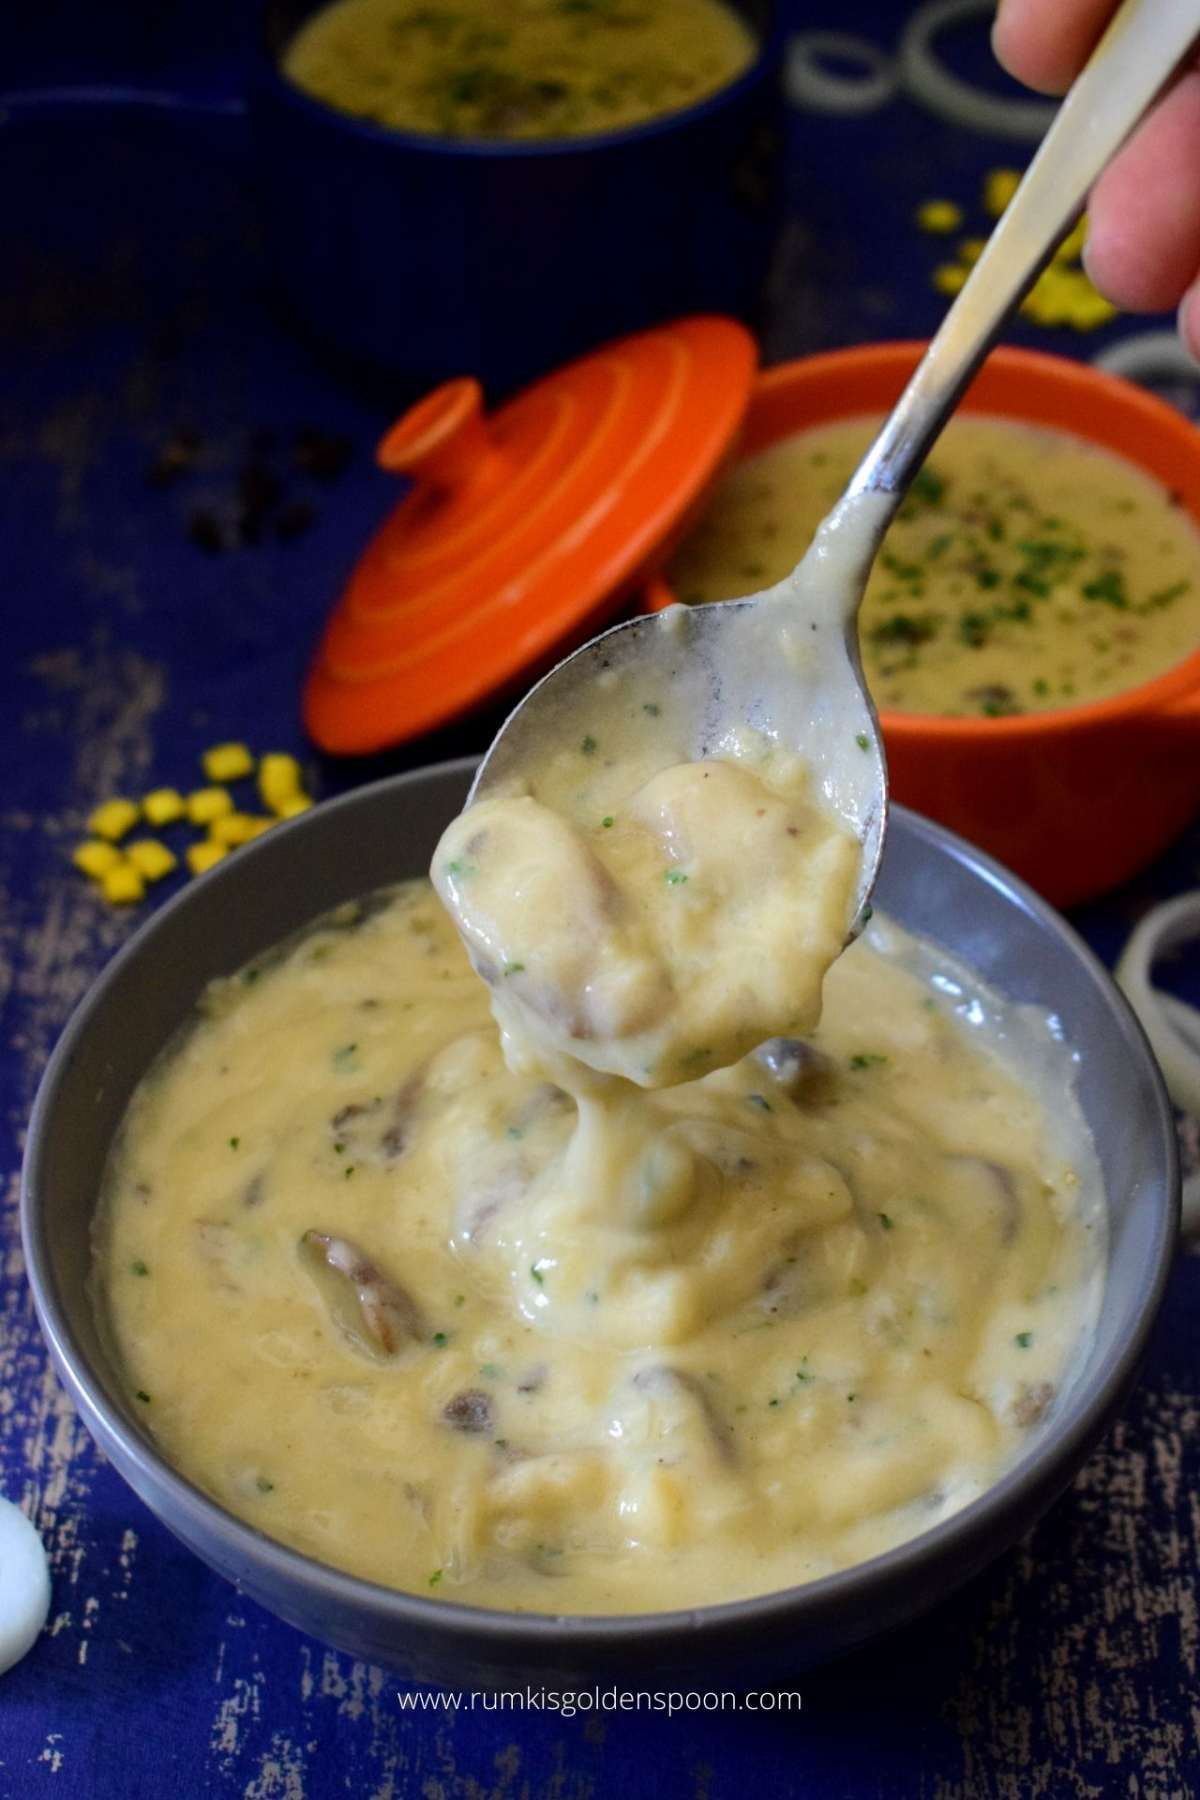 Mushroom Cheddar Soup Mushroom Soup No Cream Mushroom And Cheese Soup Rumki S Golden Spoon